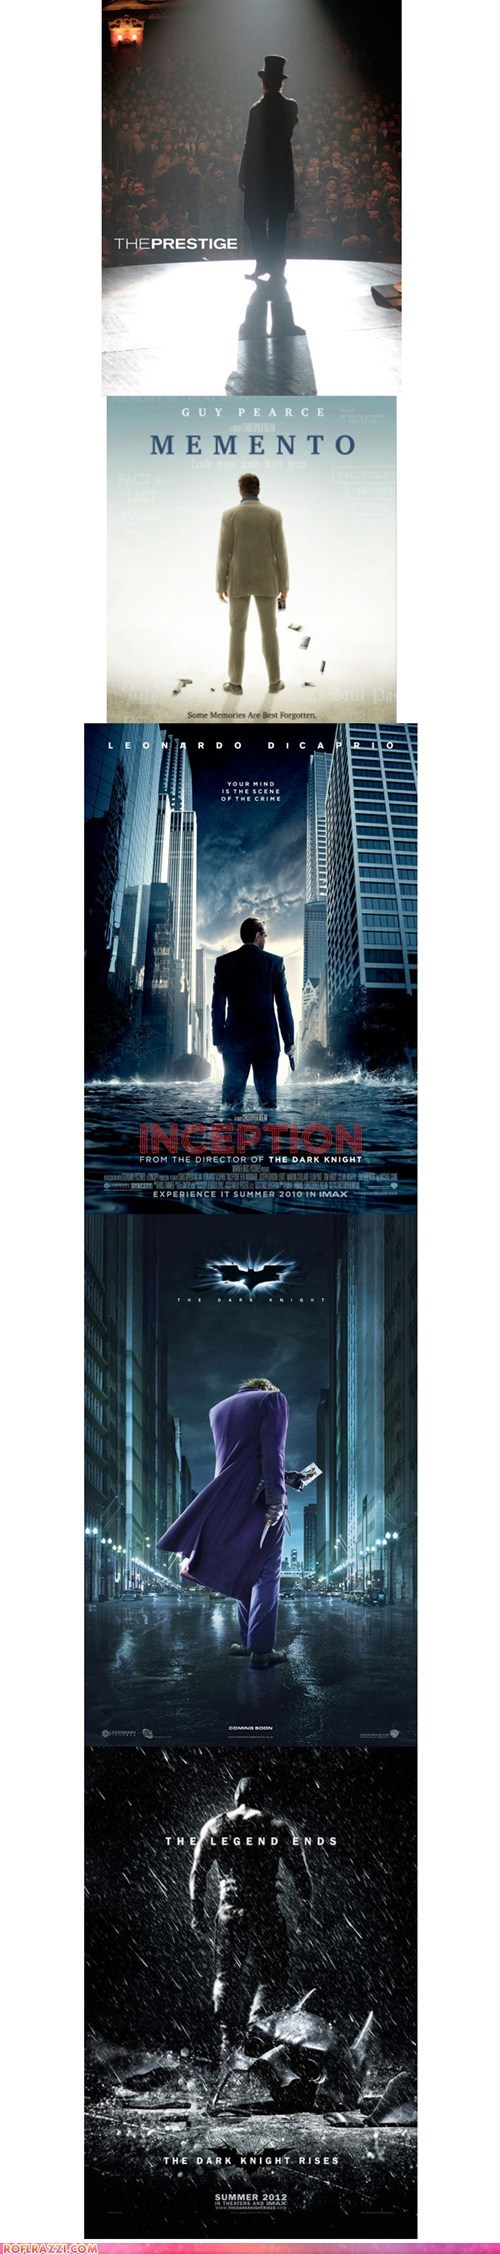 christopher nolan cool film director Movie poster - 6049350144